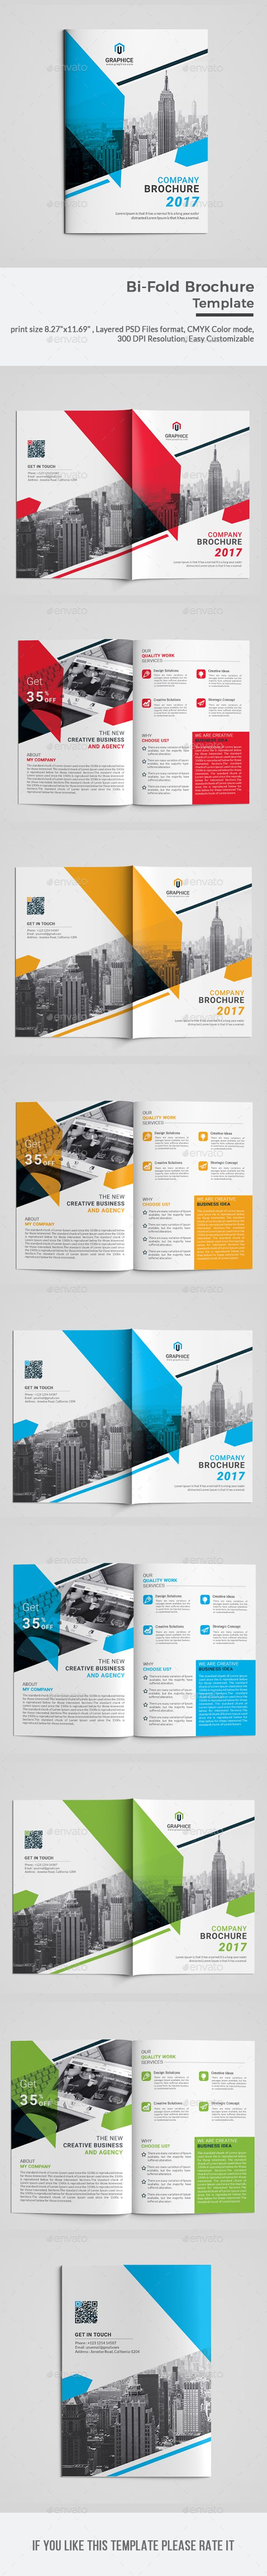 bi fold brochure template brochure template brochures and template